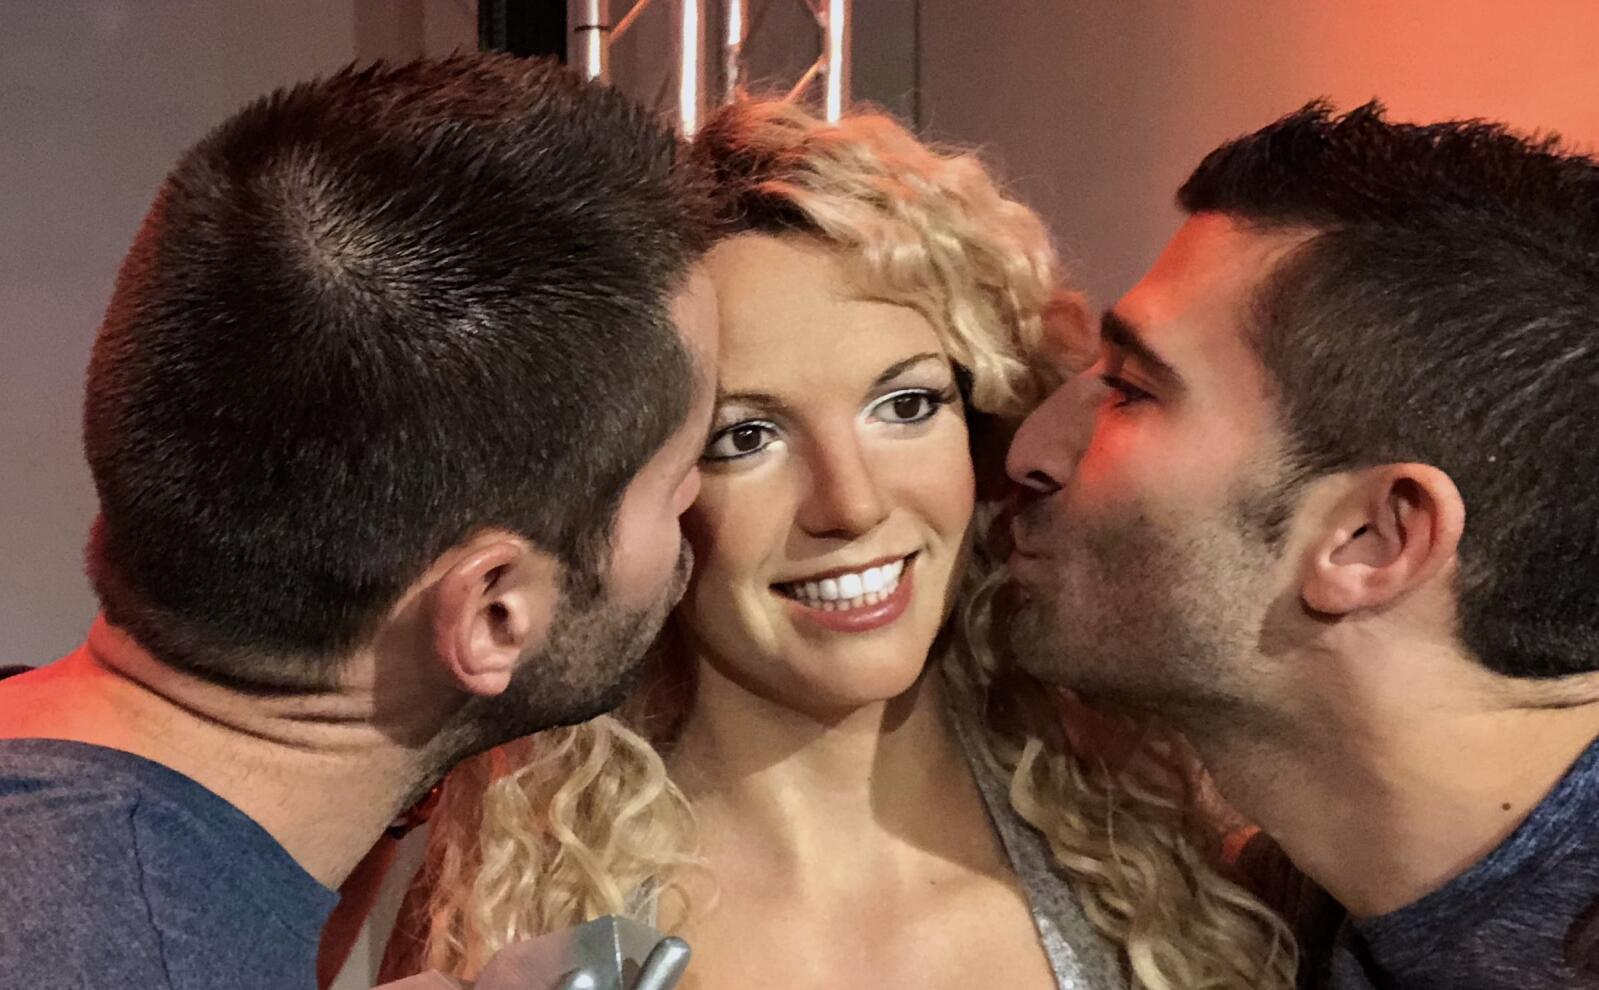 Britney gay icon at Madame Tussauds London